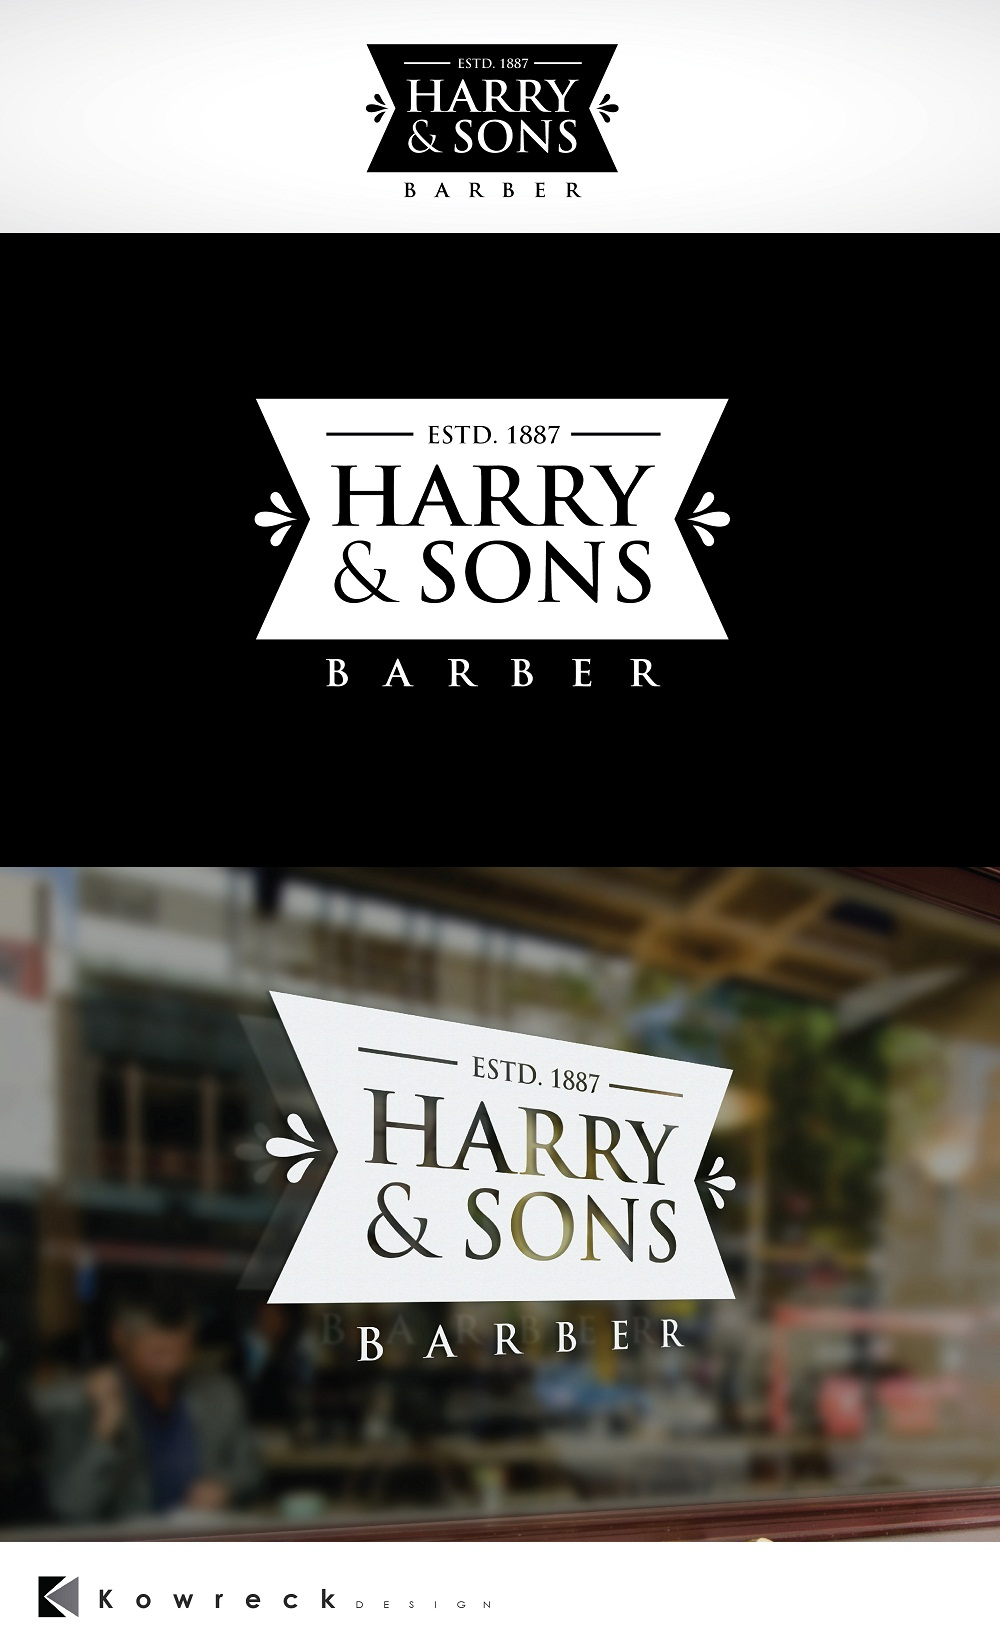 Logo Design by kowreck - Entry No. 246 in the Logo Design Contest Captivating Logo Design for Harry and Sons Barber.